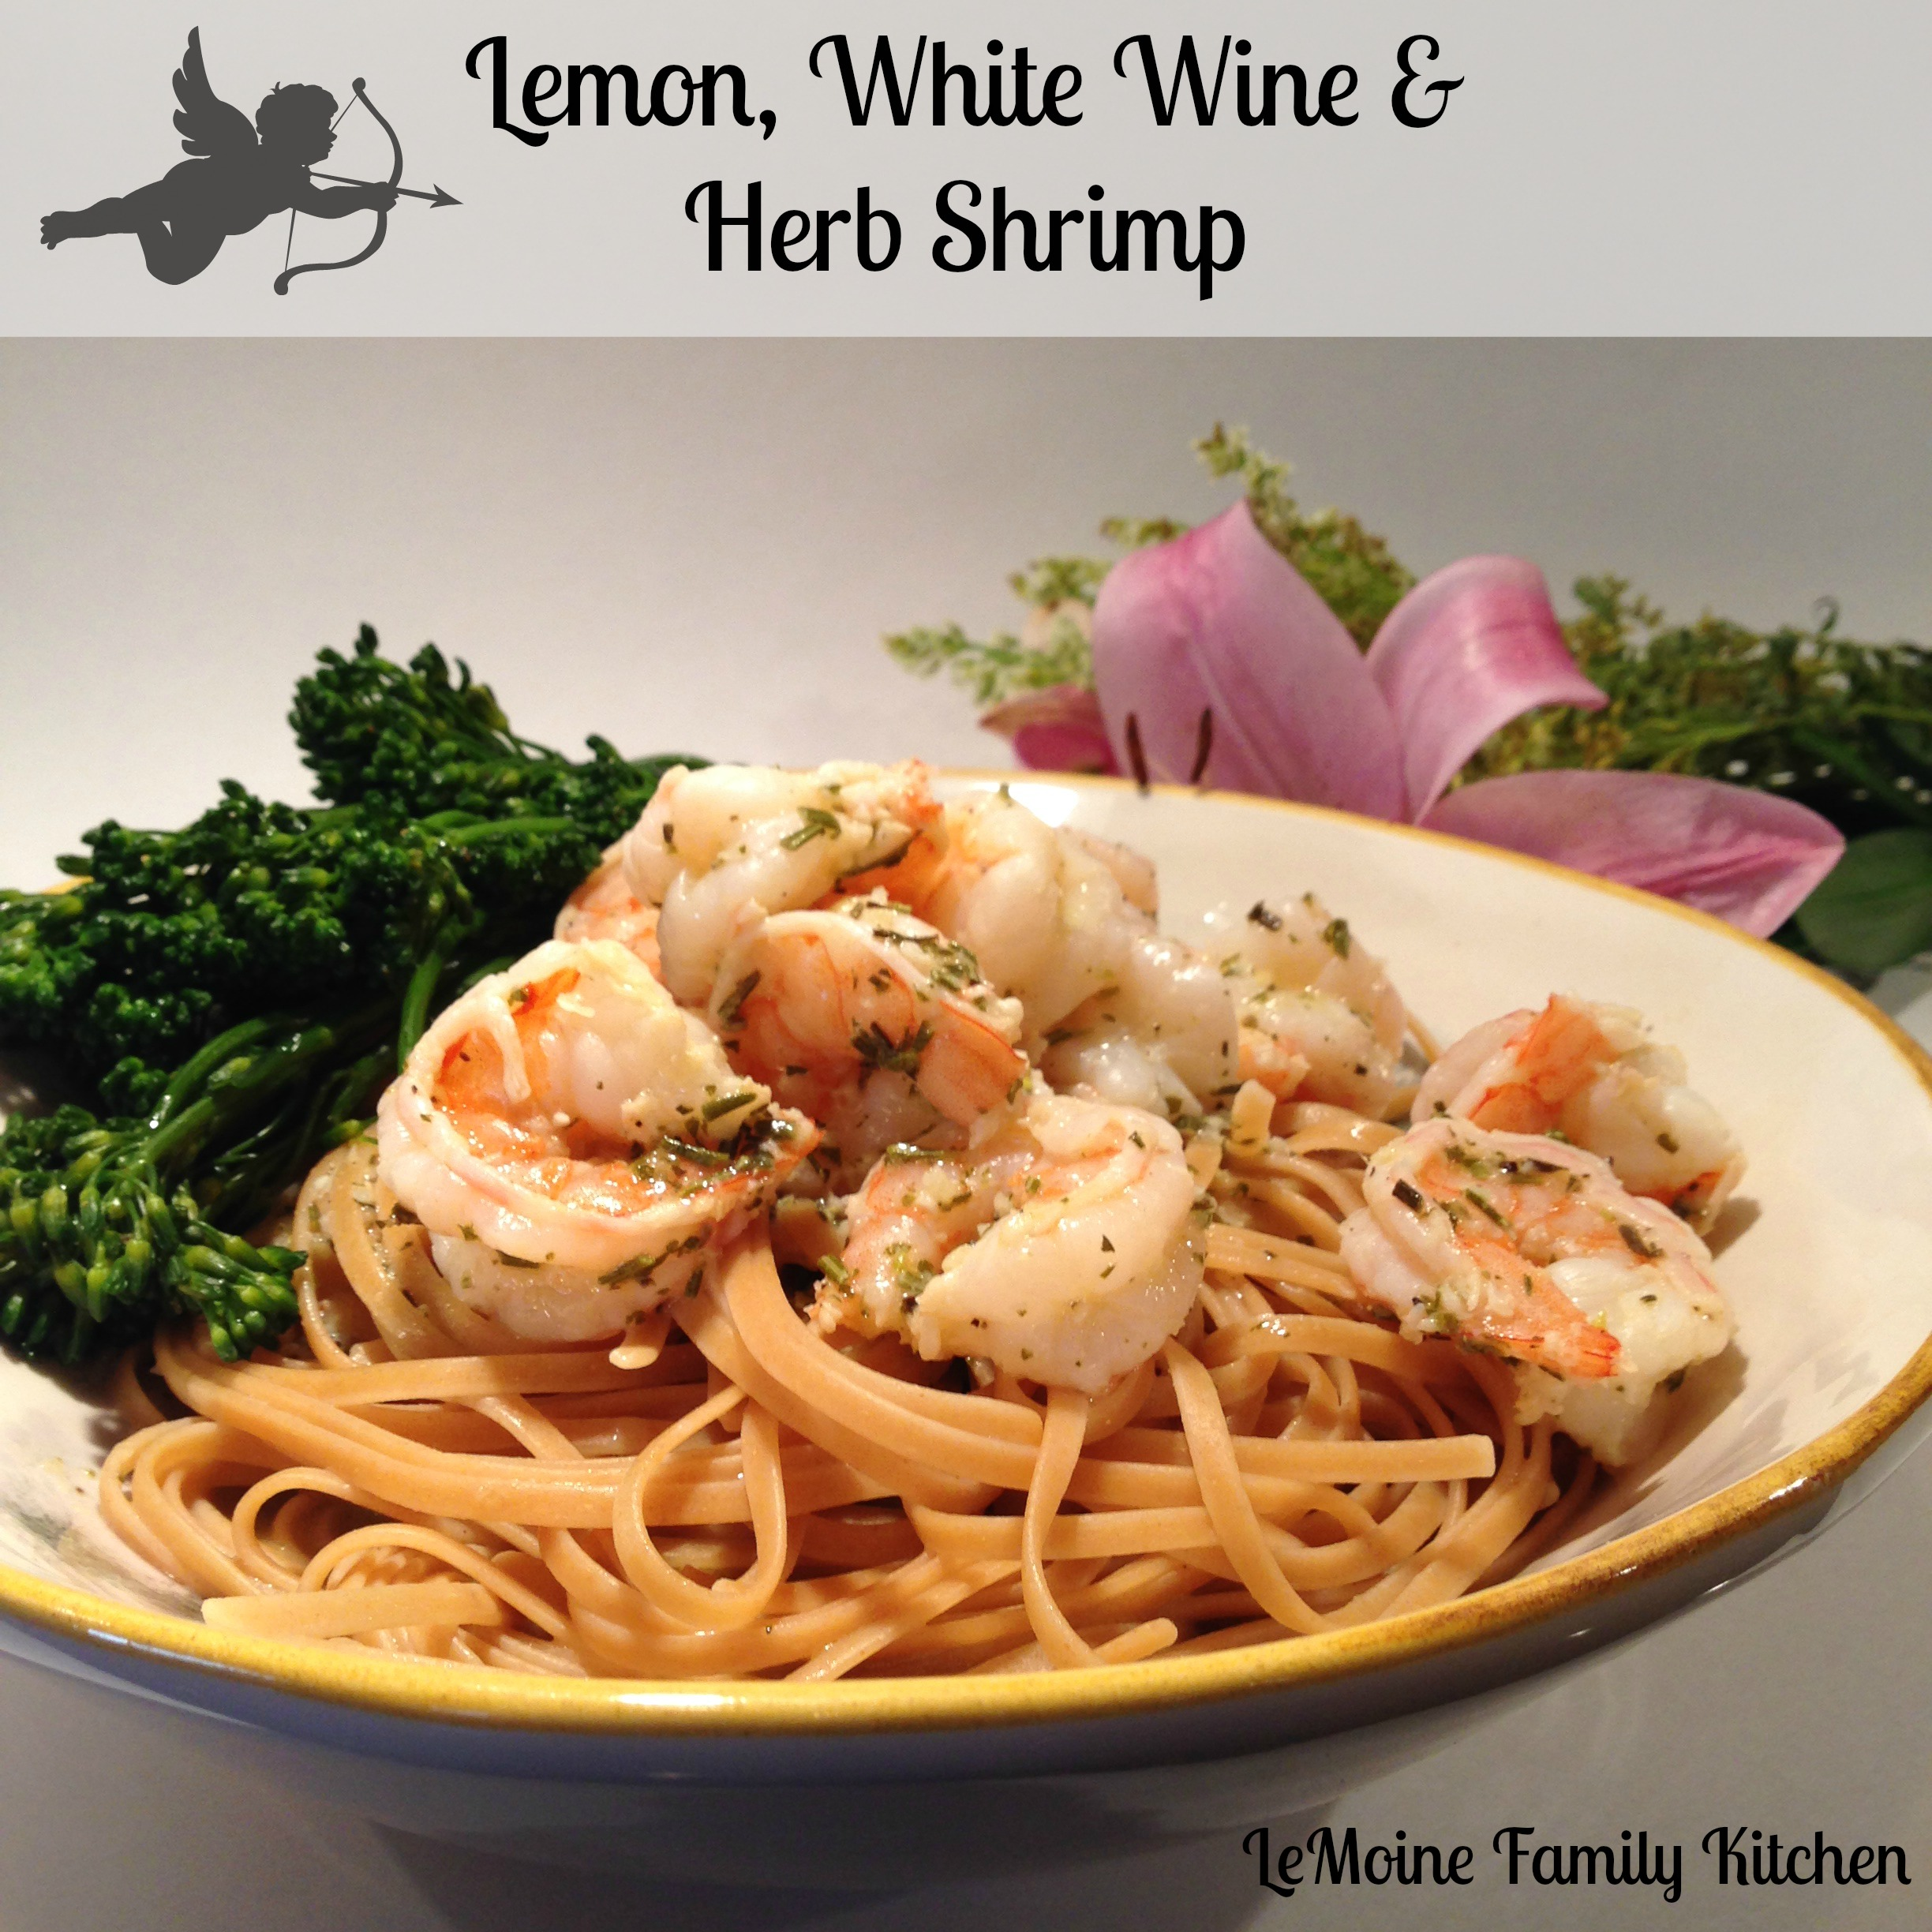 lemon, white wine, herb shrimp